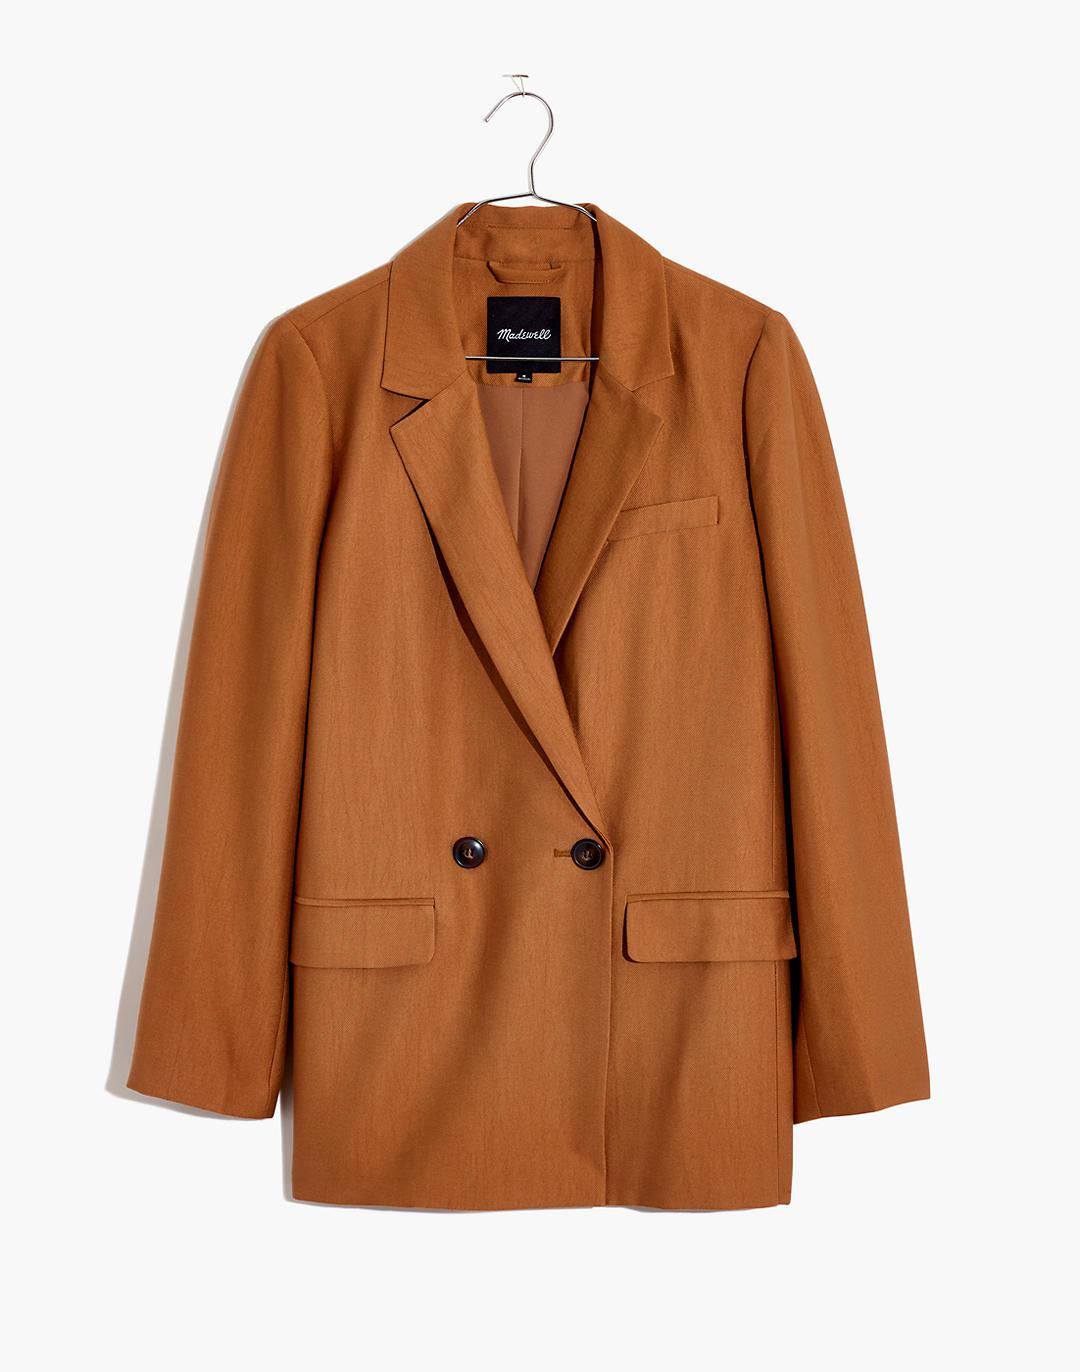 Plus Caldwell Double-Breasted Blazer: Two Button Edition